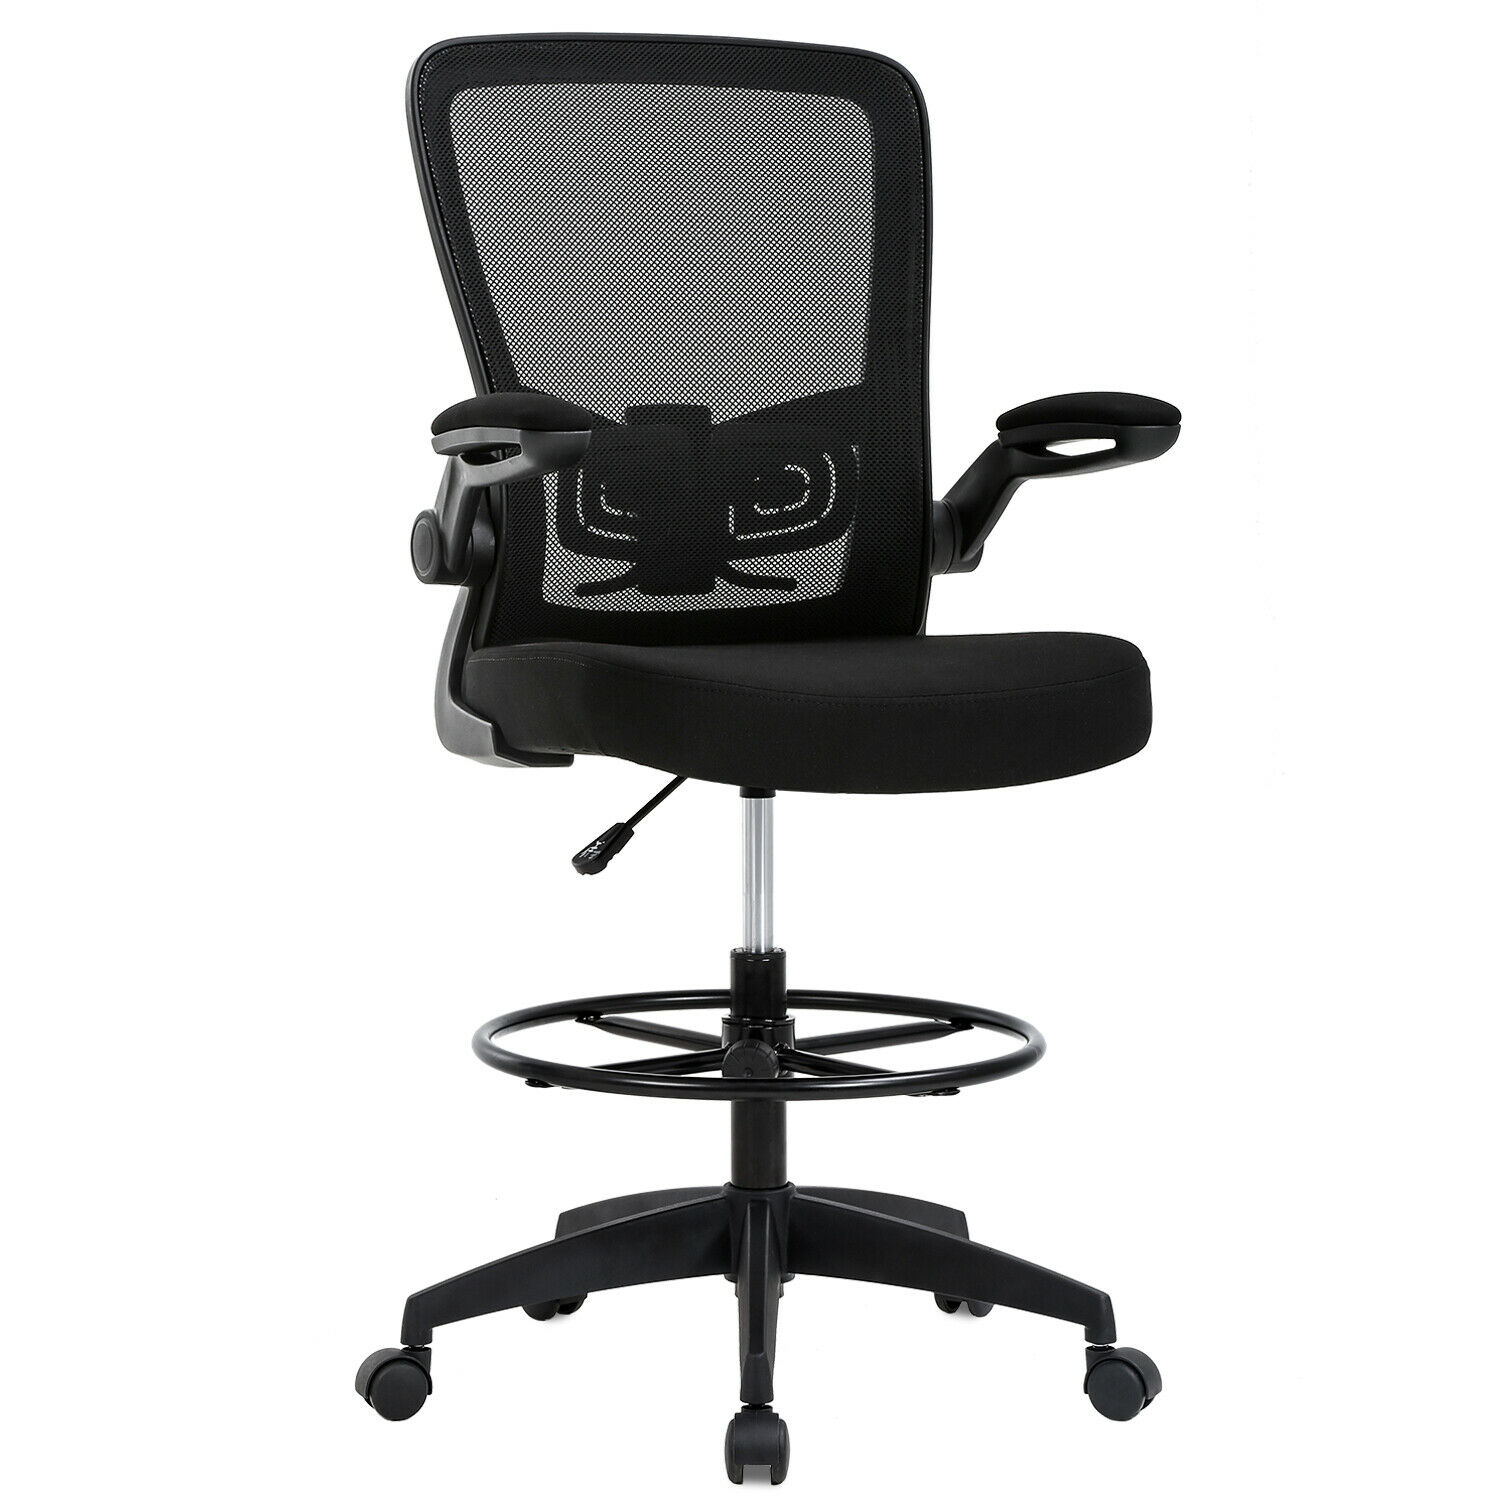 Strange Drafting Chair Tall Office Chair Adjustable Height With Lumbar Support Flip Up Arms Footrest Mid Back Task Mesh Desk Chair Computer Chair Drafting Creativecarmelina Interior Chair Design Creativecarmelinacom